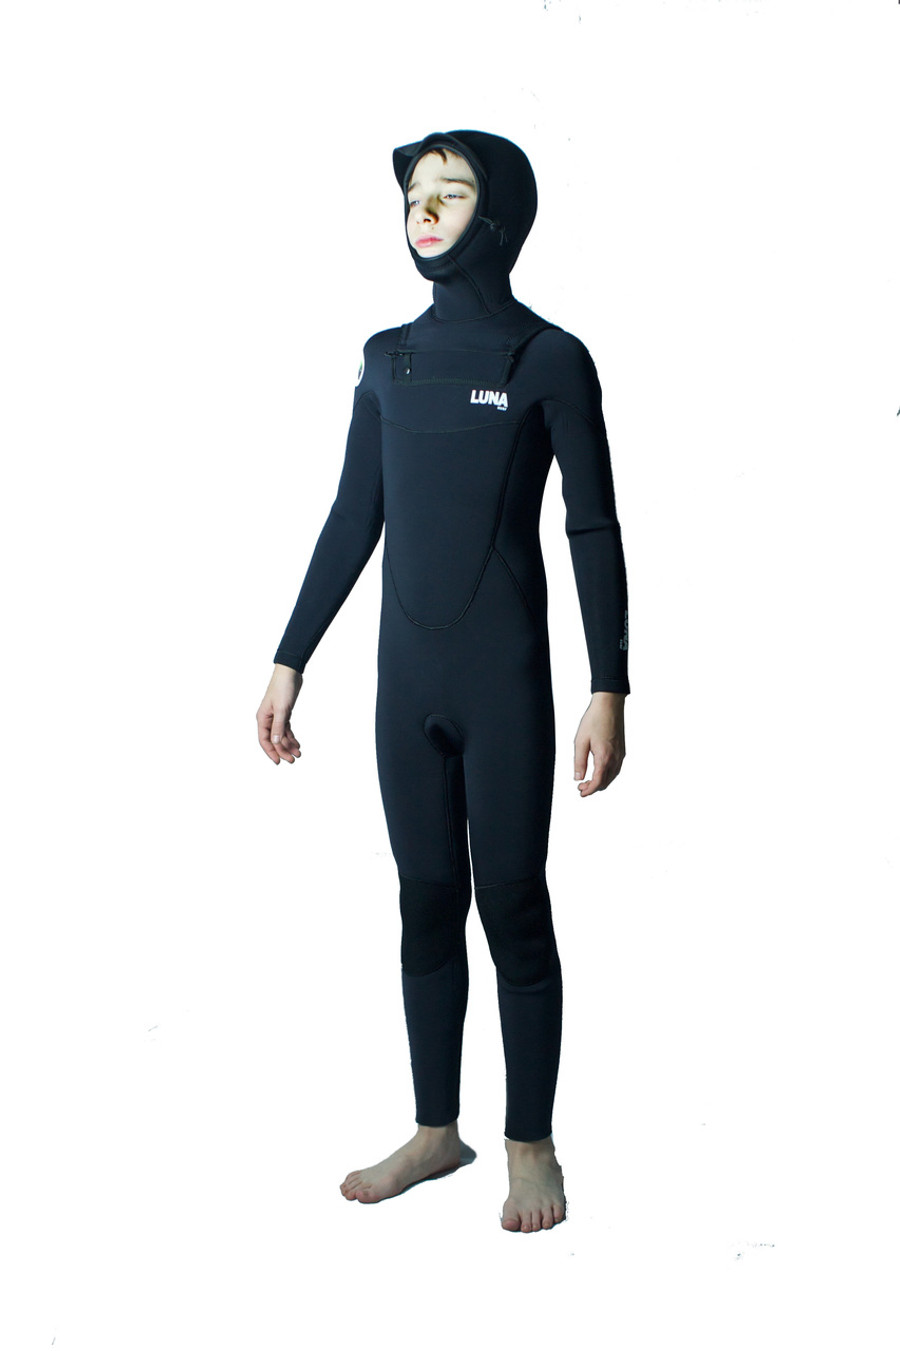 Groms ultimate winter wetsuit.